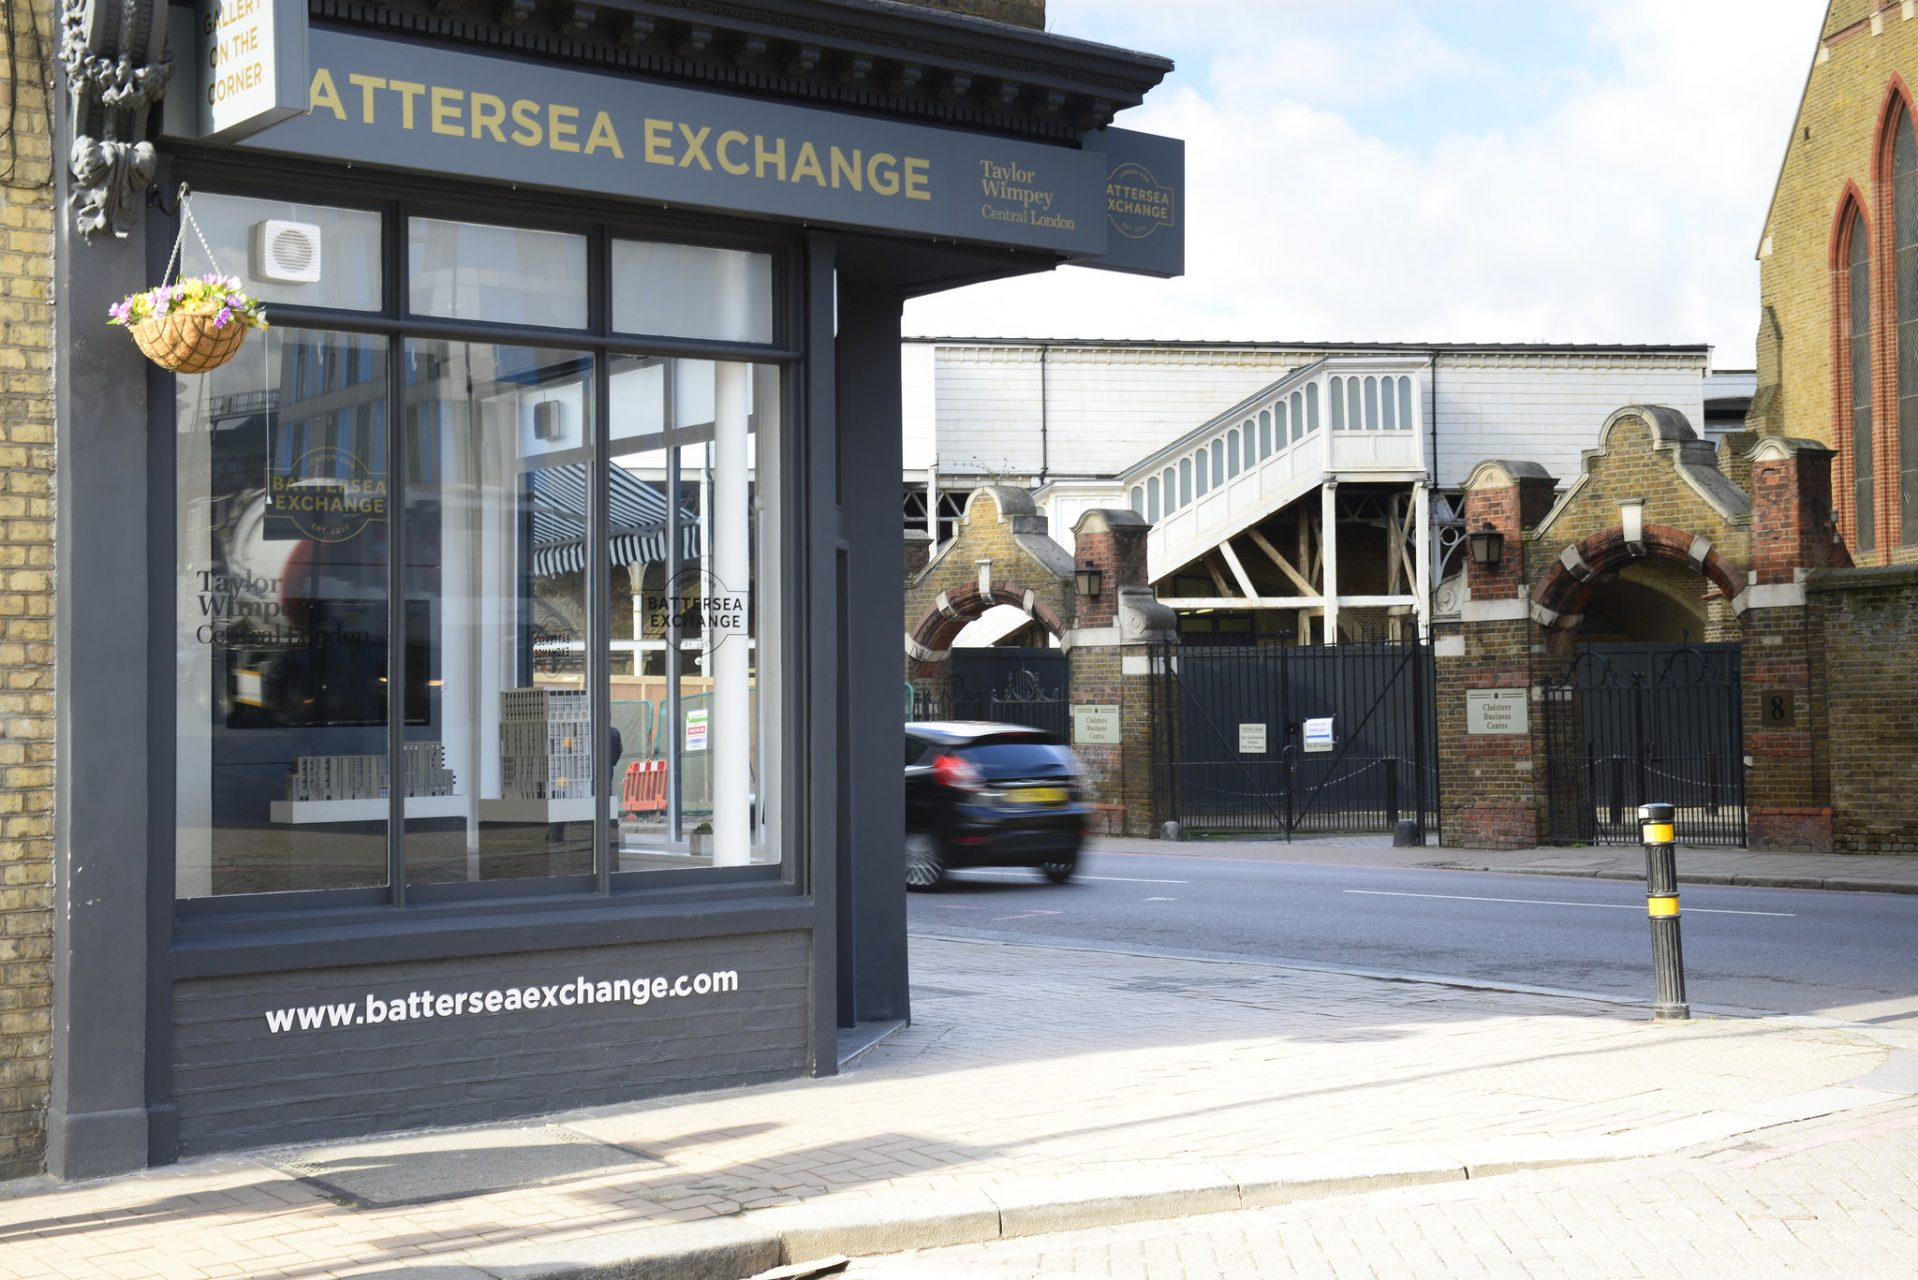 Battersea Exchange Marketing Suite Exterior for Taylor Wimpey Central London